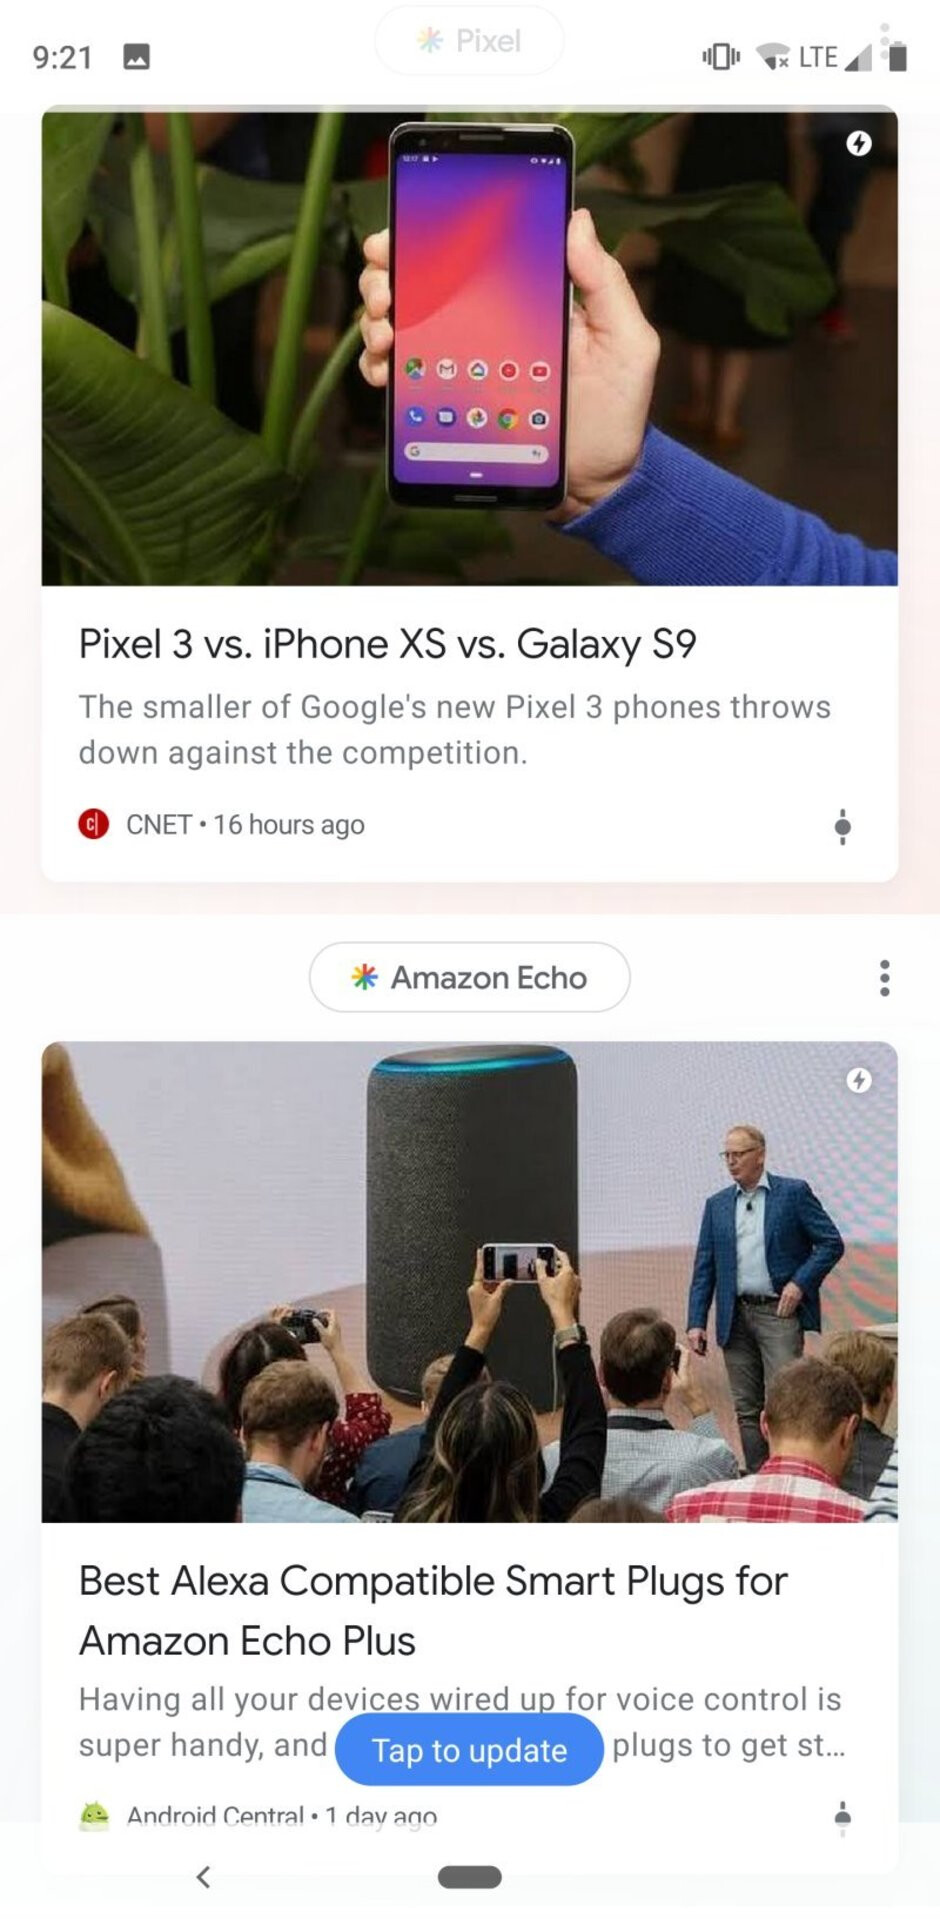 Interface of the Pixel 3 - Samsung Galaxy S10 vs Google Pixel 3